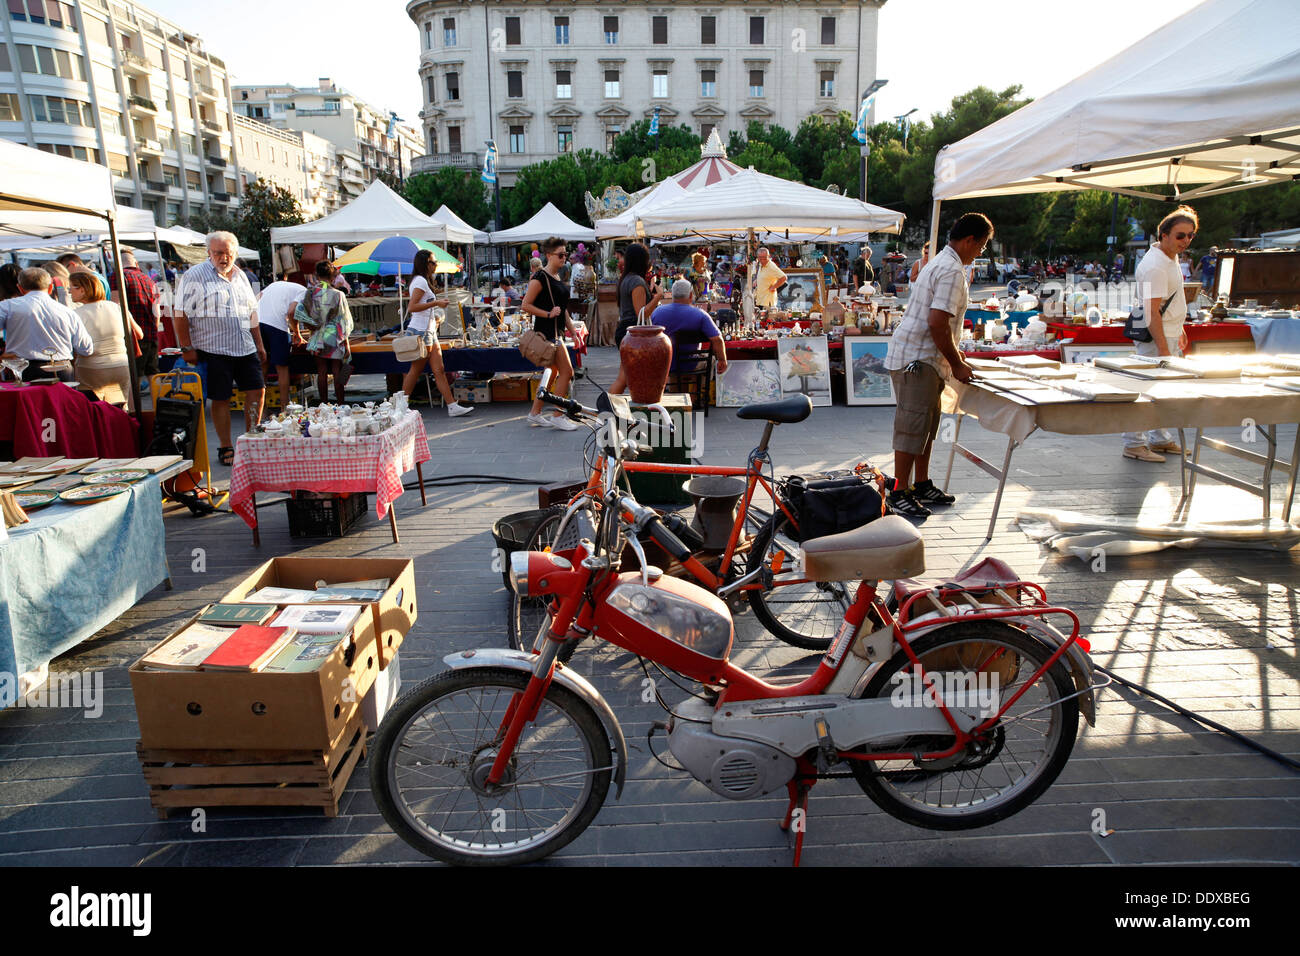 Antiques market, Pescara, Italy. - Stock Image